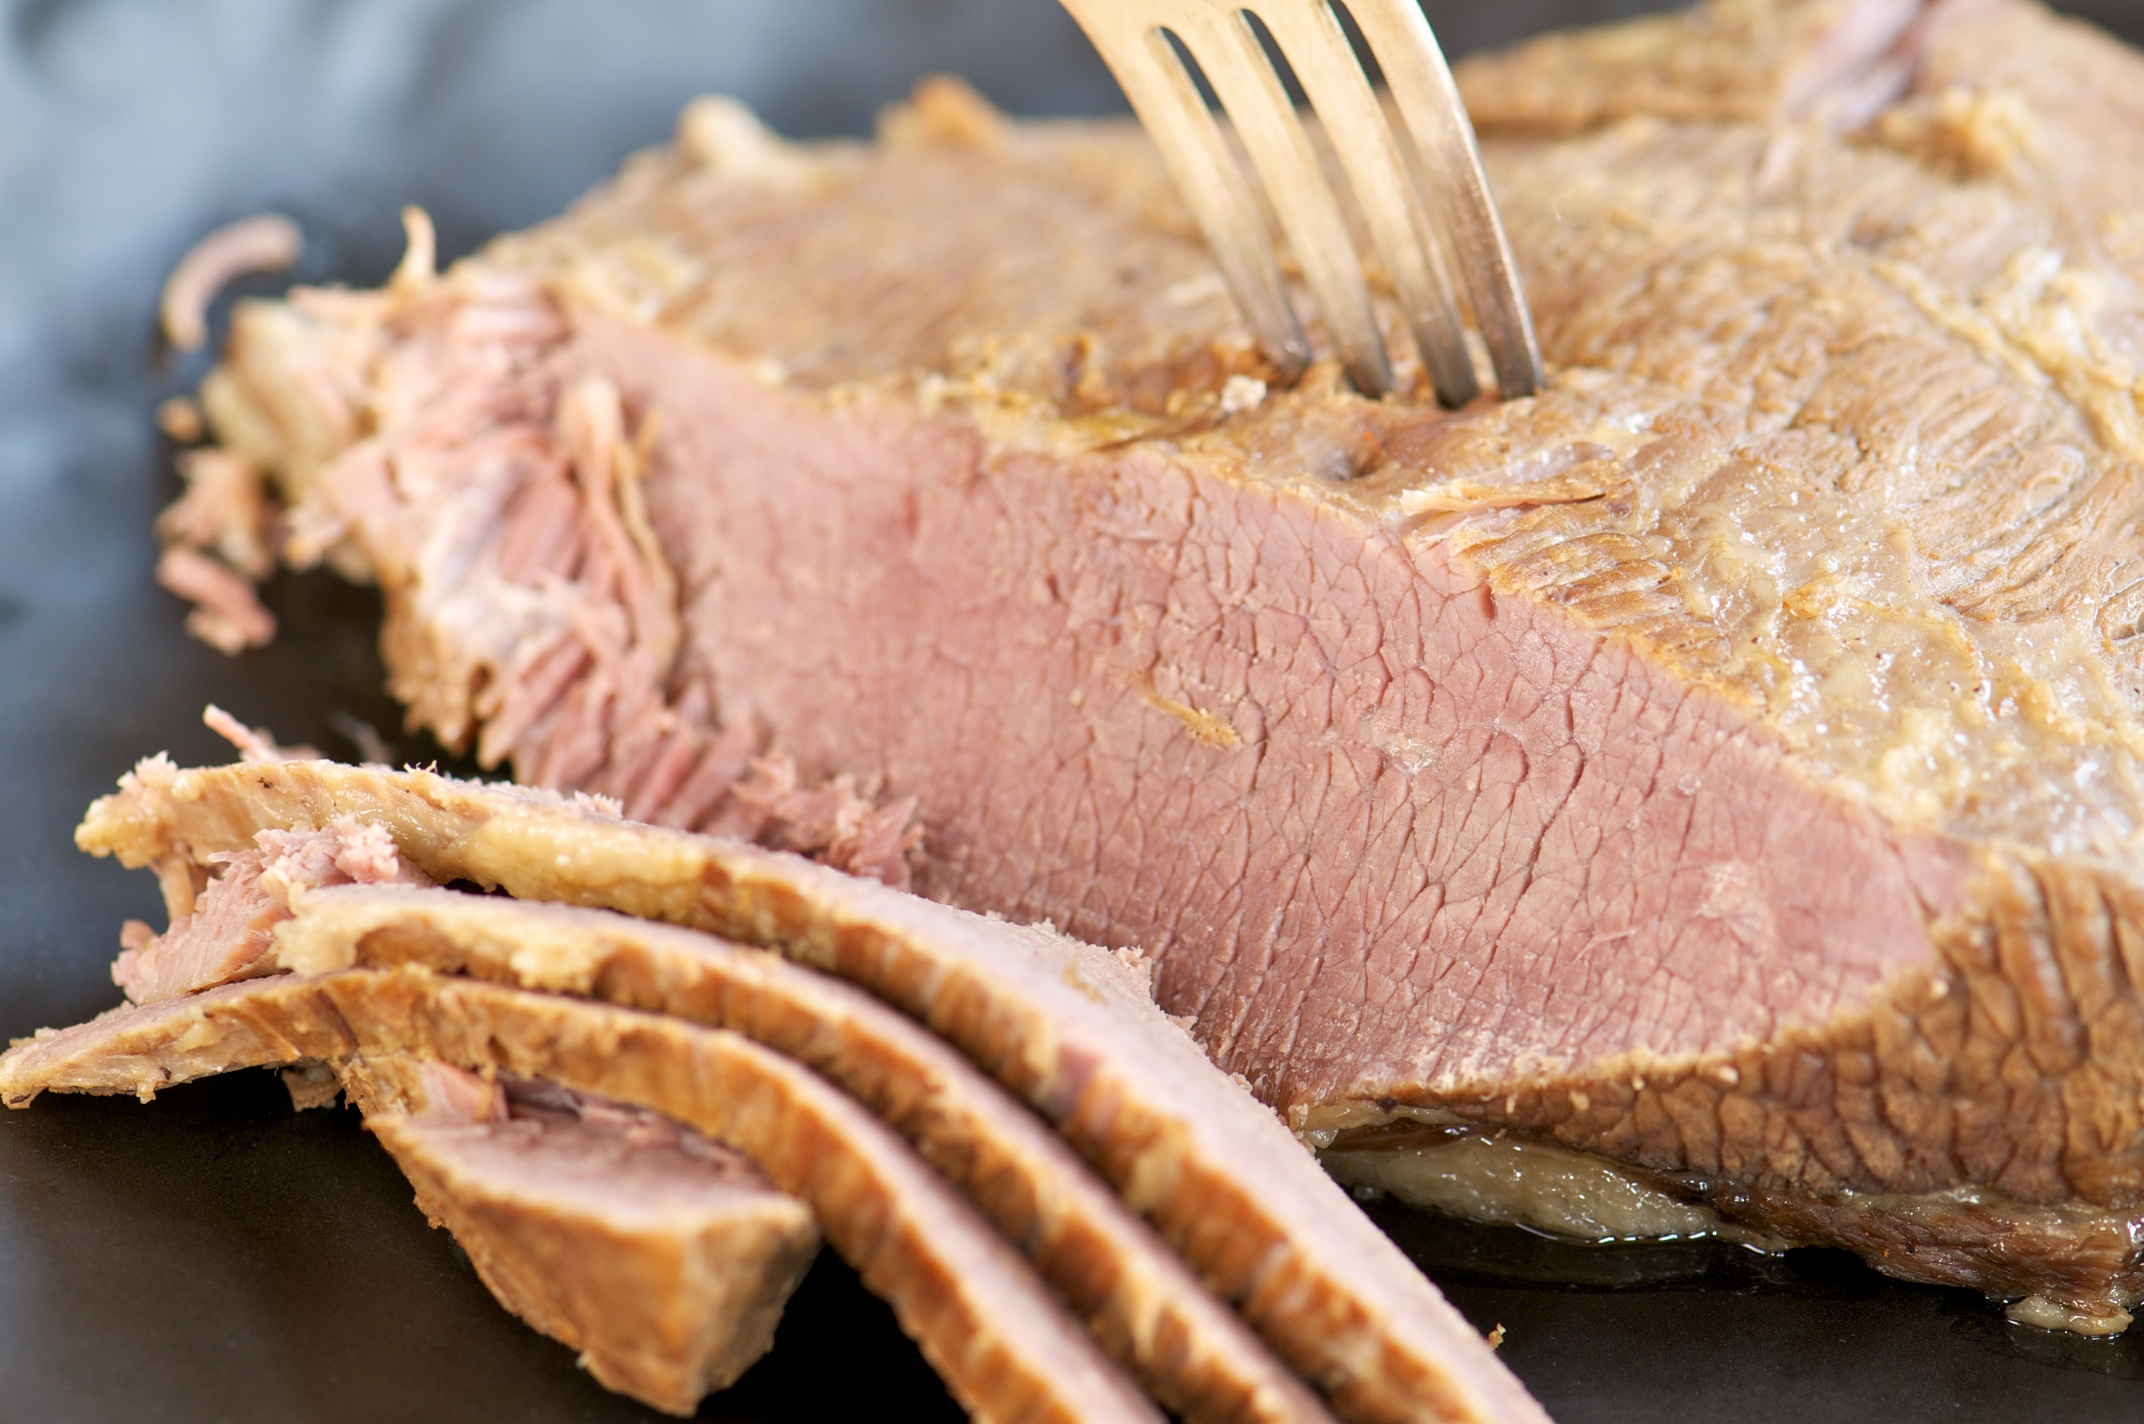 Finecooking.com chose our post on how to make homemade corned beef for ...